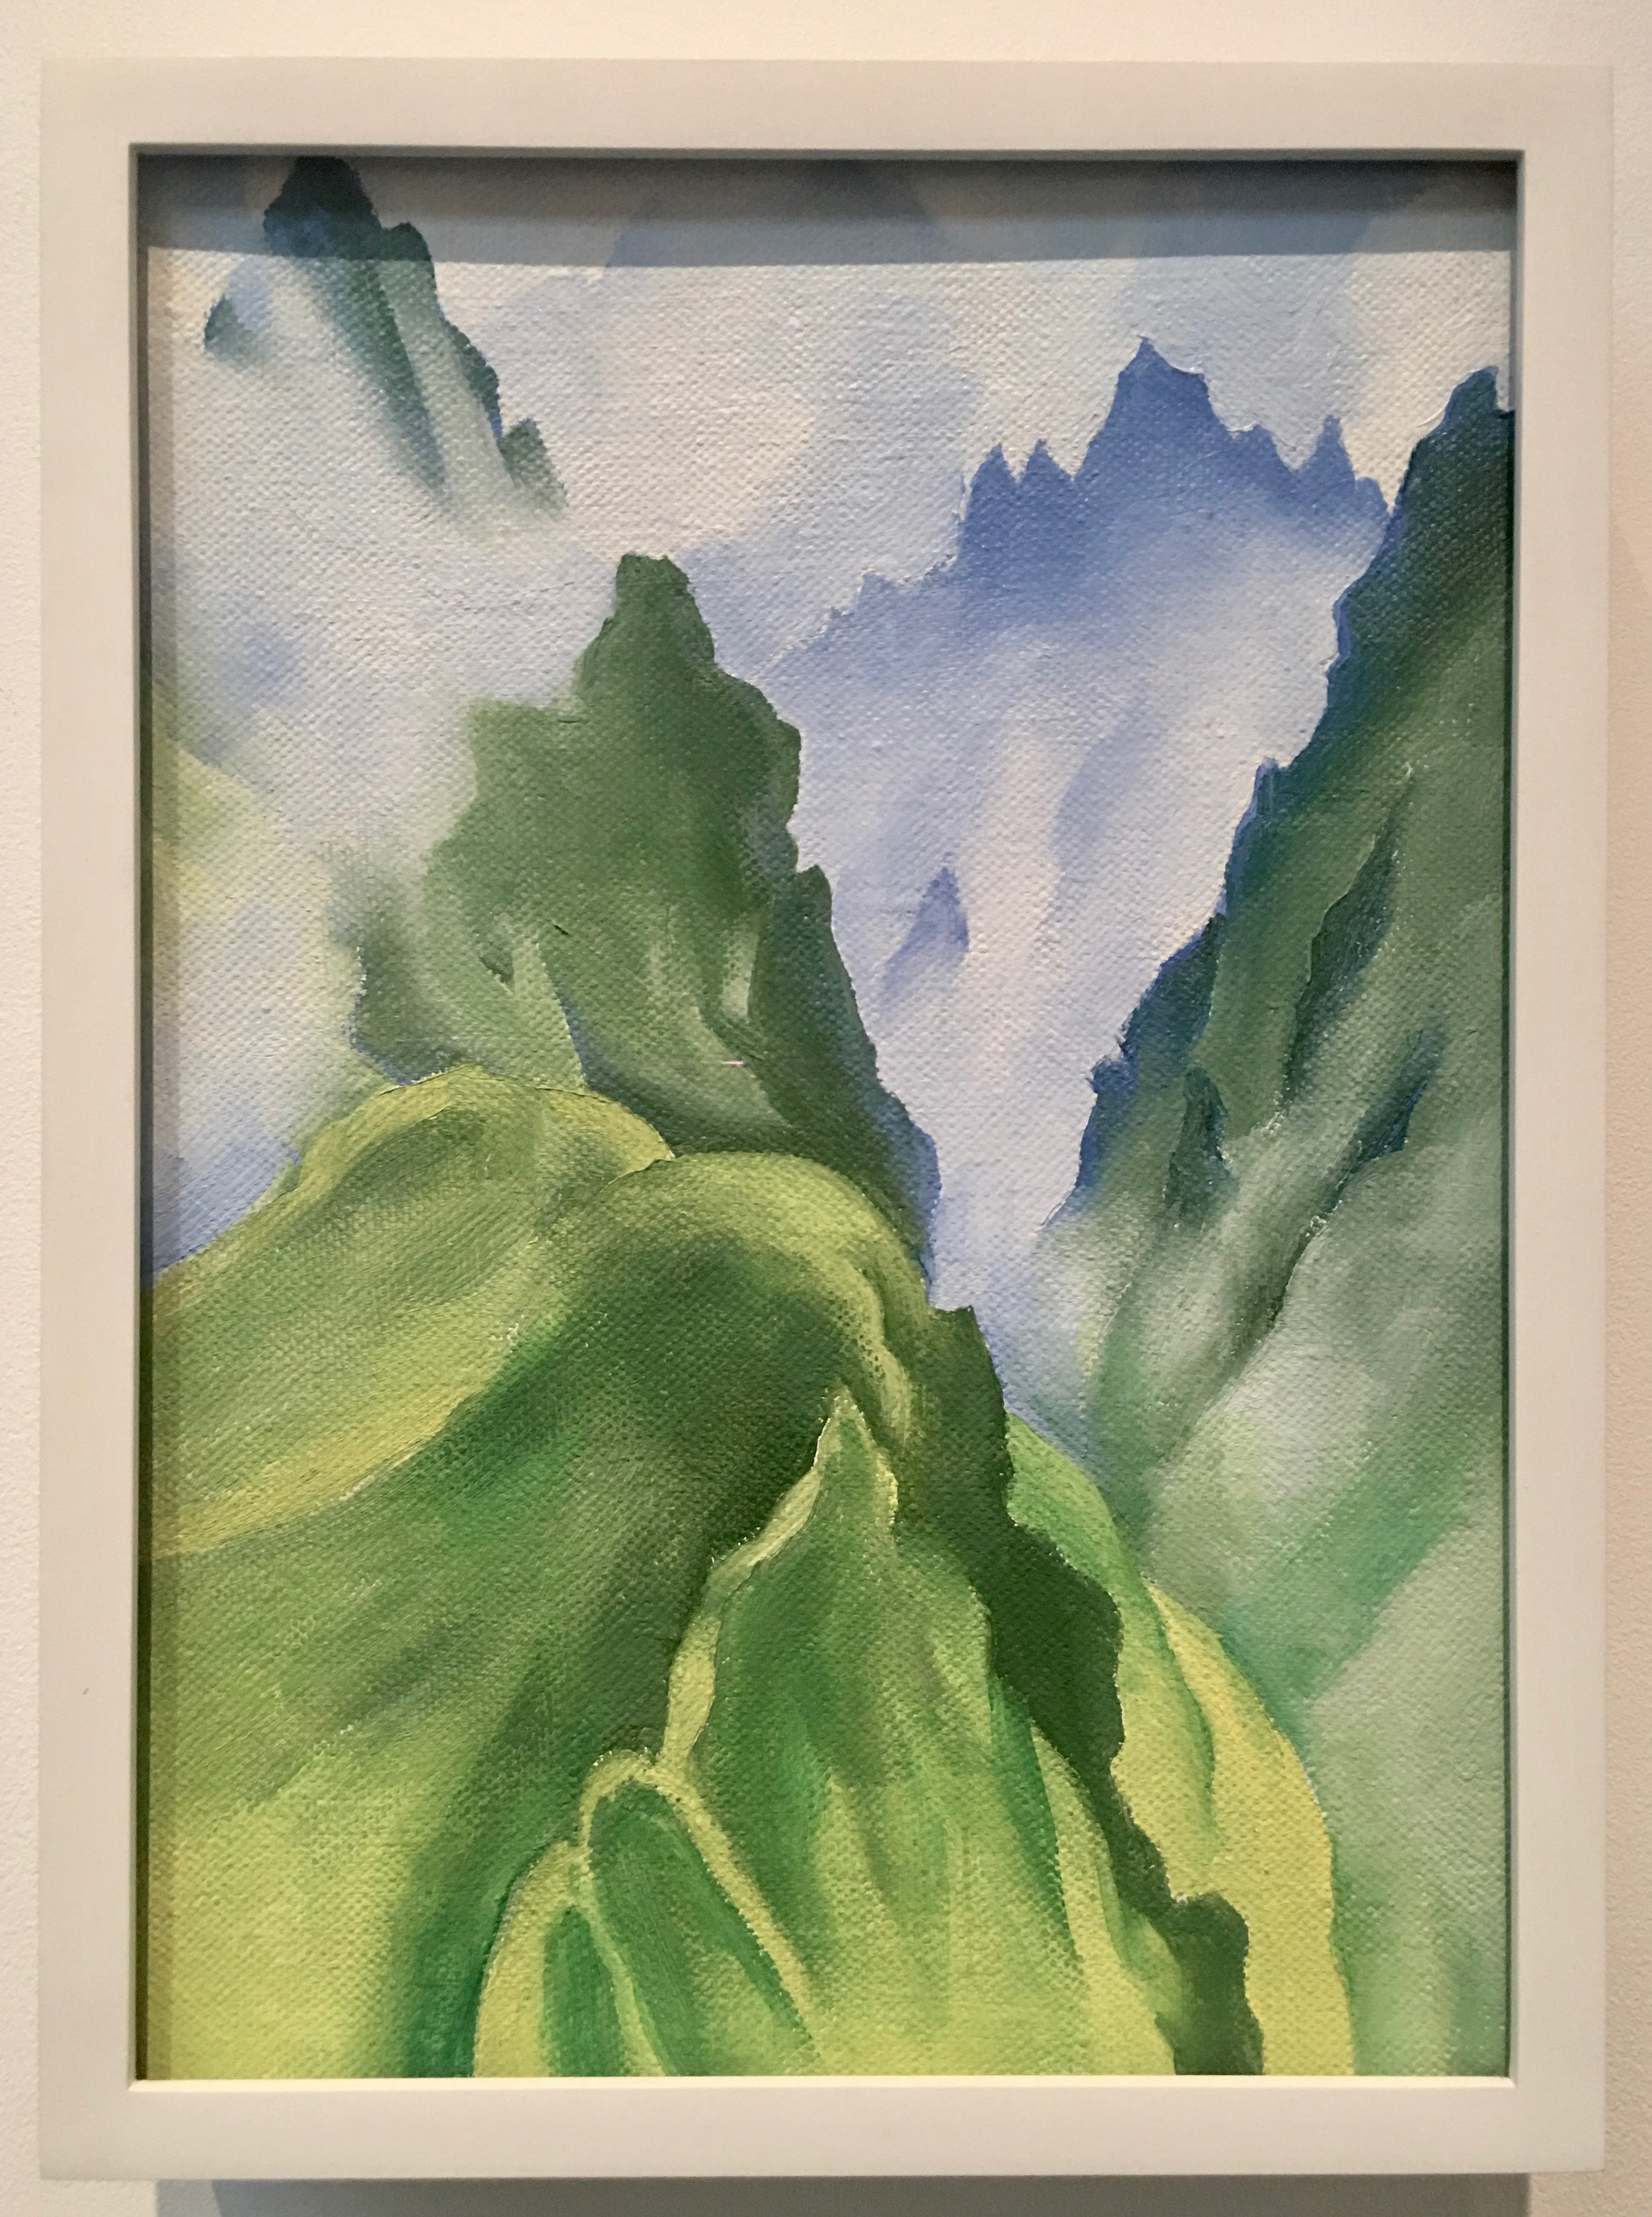 Georgia O'Keefe, Machu Picchu 1, 1957, Oil on Canvas